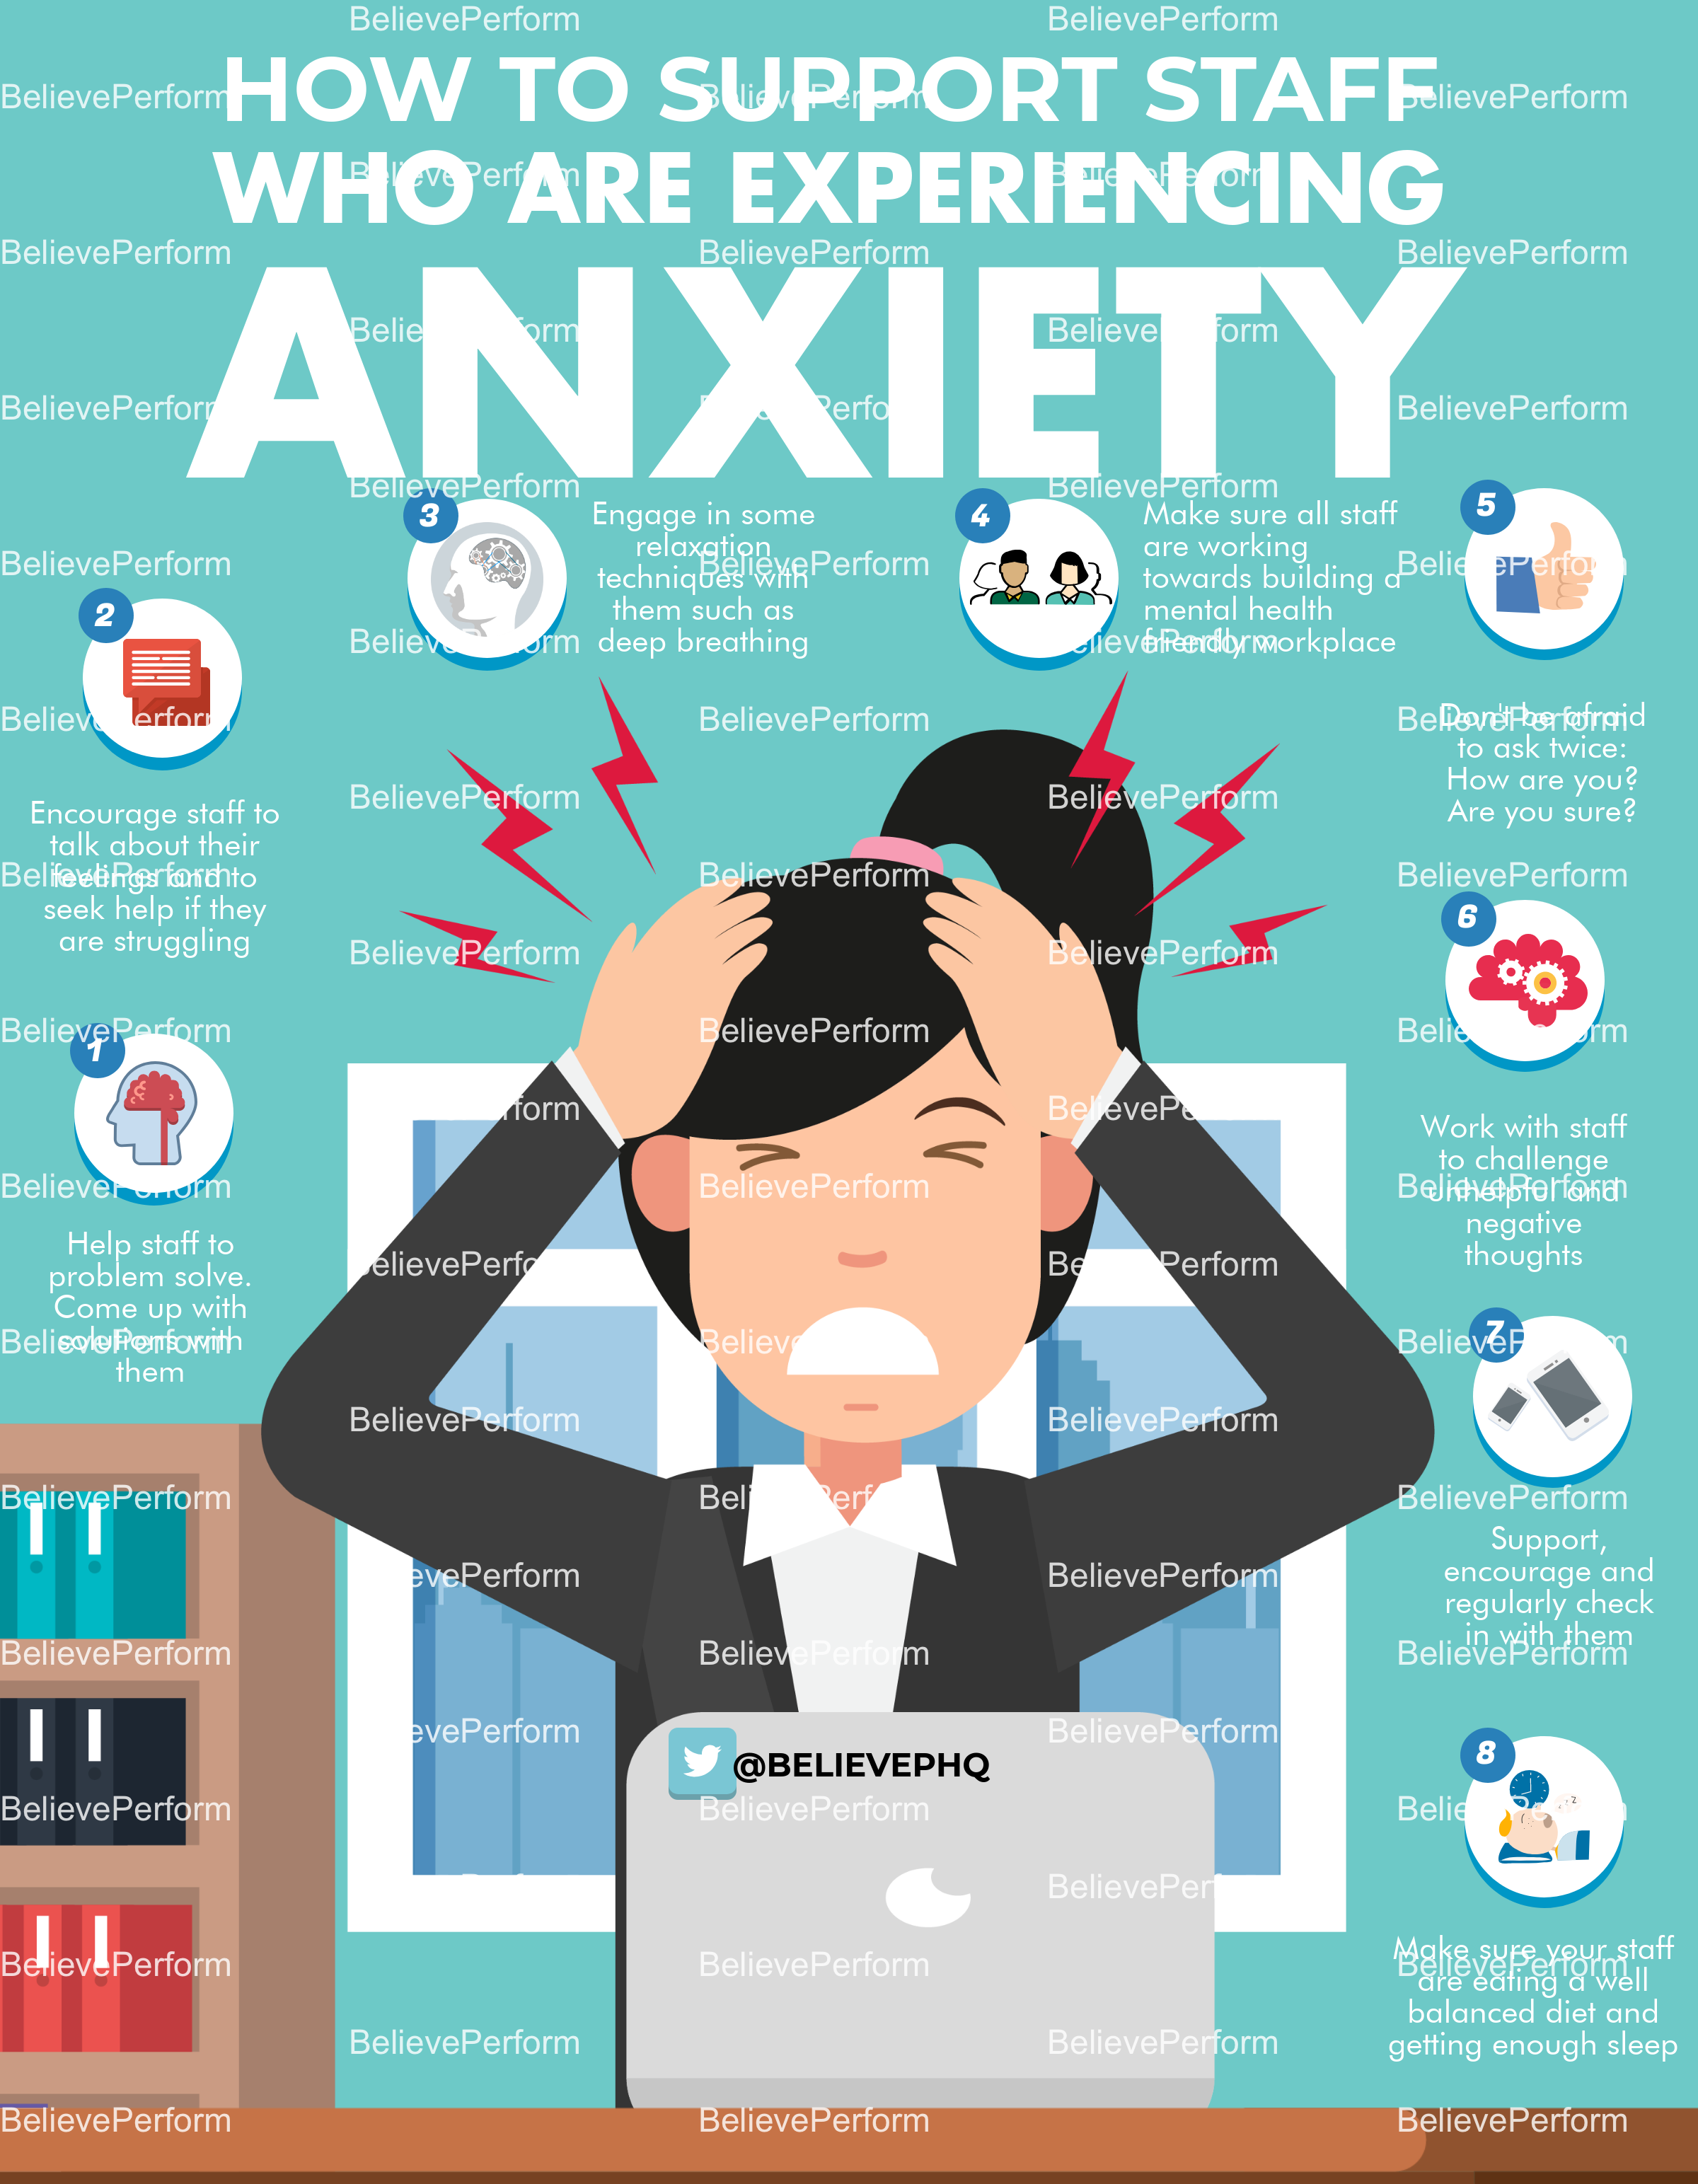 How to support staff who are experiencing anxiety